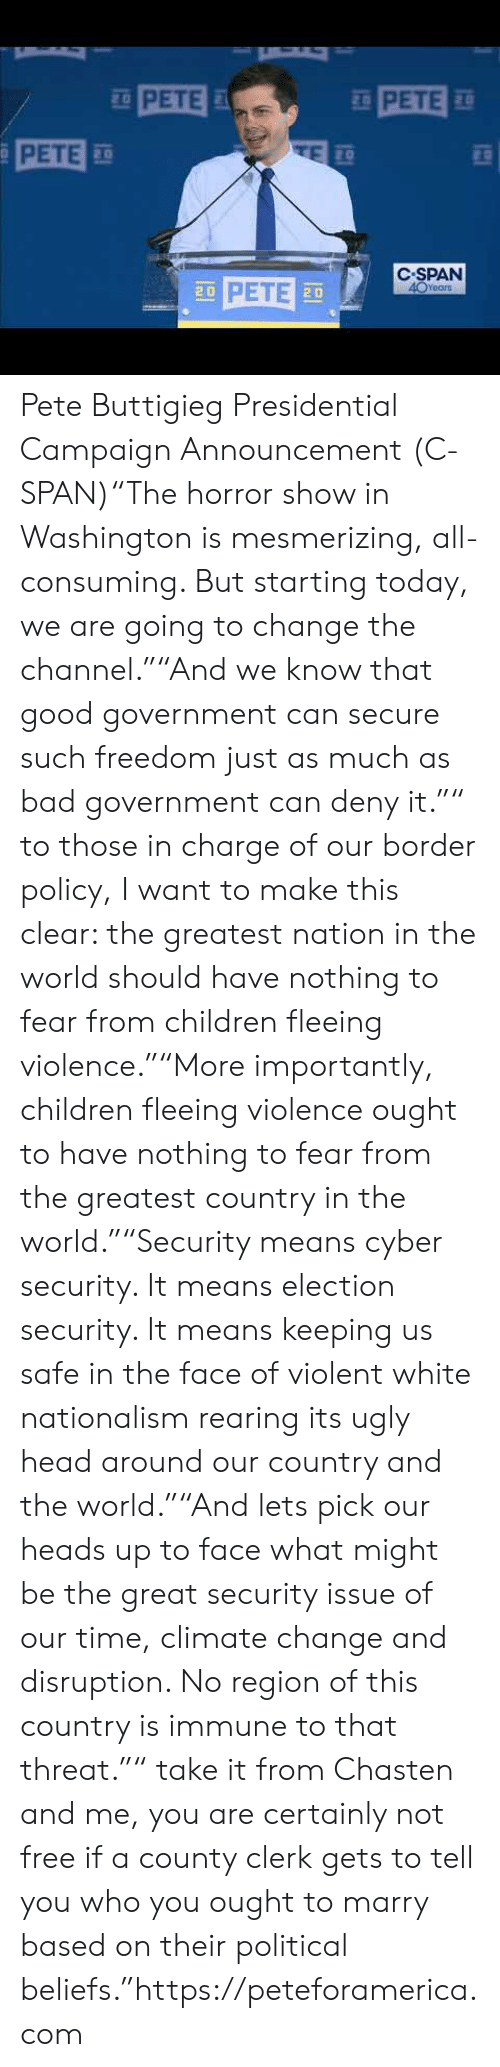 """Bad, Children, and Head: PETE  PETE  20  C-SPAN  PETE 30  Year  20  2 D Pete Buttigieg Presidential Campaign Announcement (C-SPAN)""""The horror show in Washington is mesmerizing, all-consuming. But starting today, we are going to change the channel.""""""""And we know that good government can secure such freedom just as much as bad government can deny it."""""""" to those in charge of our border policy, I want to make this clear: the greatest nation in the world should have nothing to fear from children fleeing violence.""""""""More importantly, children fleeing violence ought to have nothing to fear from the greatest country in the world.""""""""Security means cyber security. It means election security. It means keeping us safe in the face of violent white nationalism rearing its ugly head around our country and the world.""""""""And lets pick our heads up to face what might be the great security issue of our time, climate change and disruption. No region of this country is immune to that threat."""""""" take it from Chasten and me, you are certainly not free if a county clerk gets to tell you who you ought to marry based on their political beliefs.""""https://peteforamerica.com"""